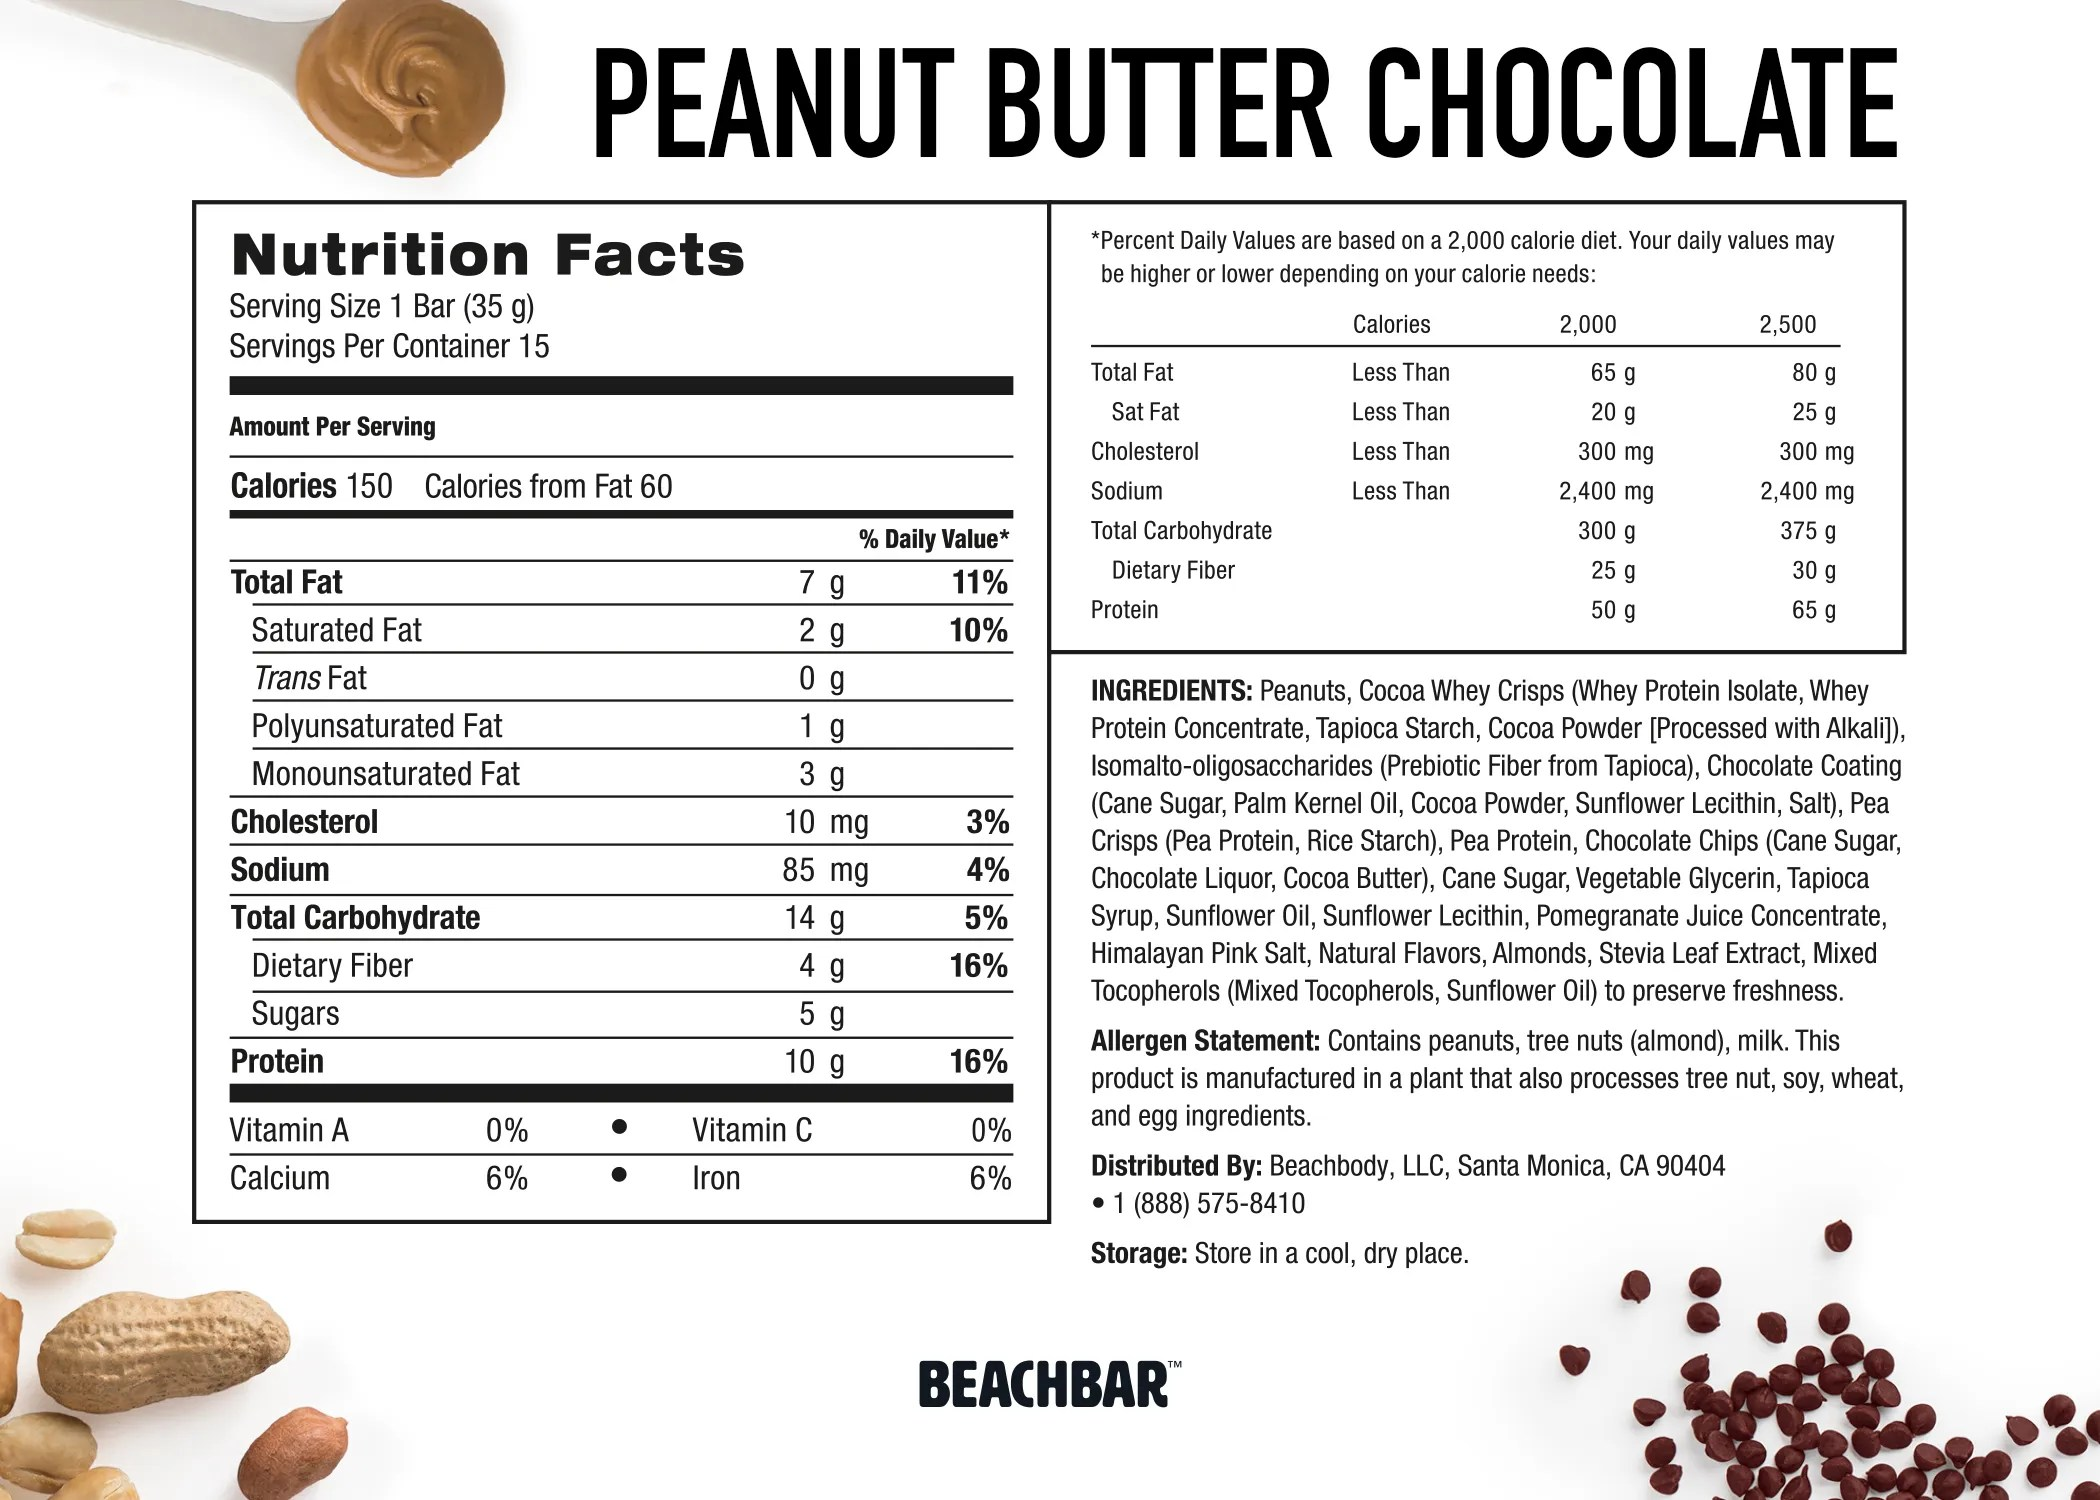 Beachbody BEACHBAR Peanut Butter Chocolate Nutrition Label